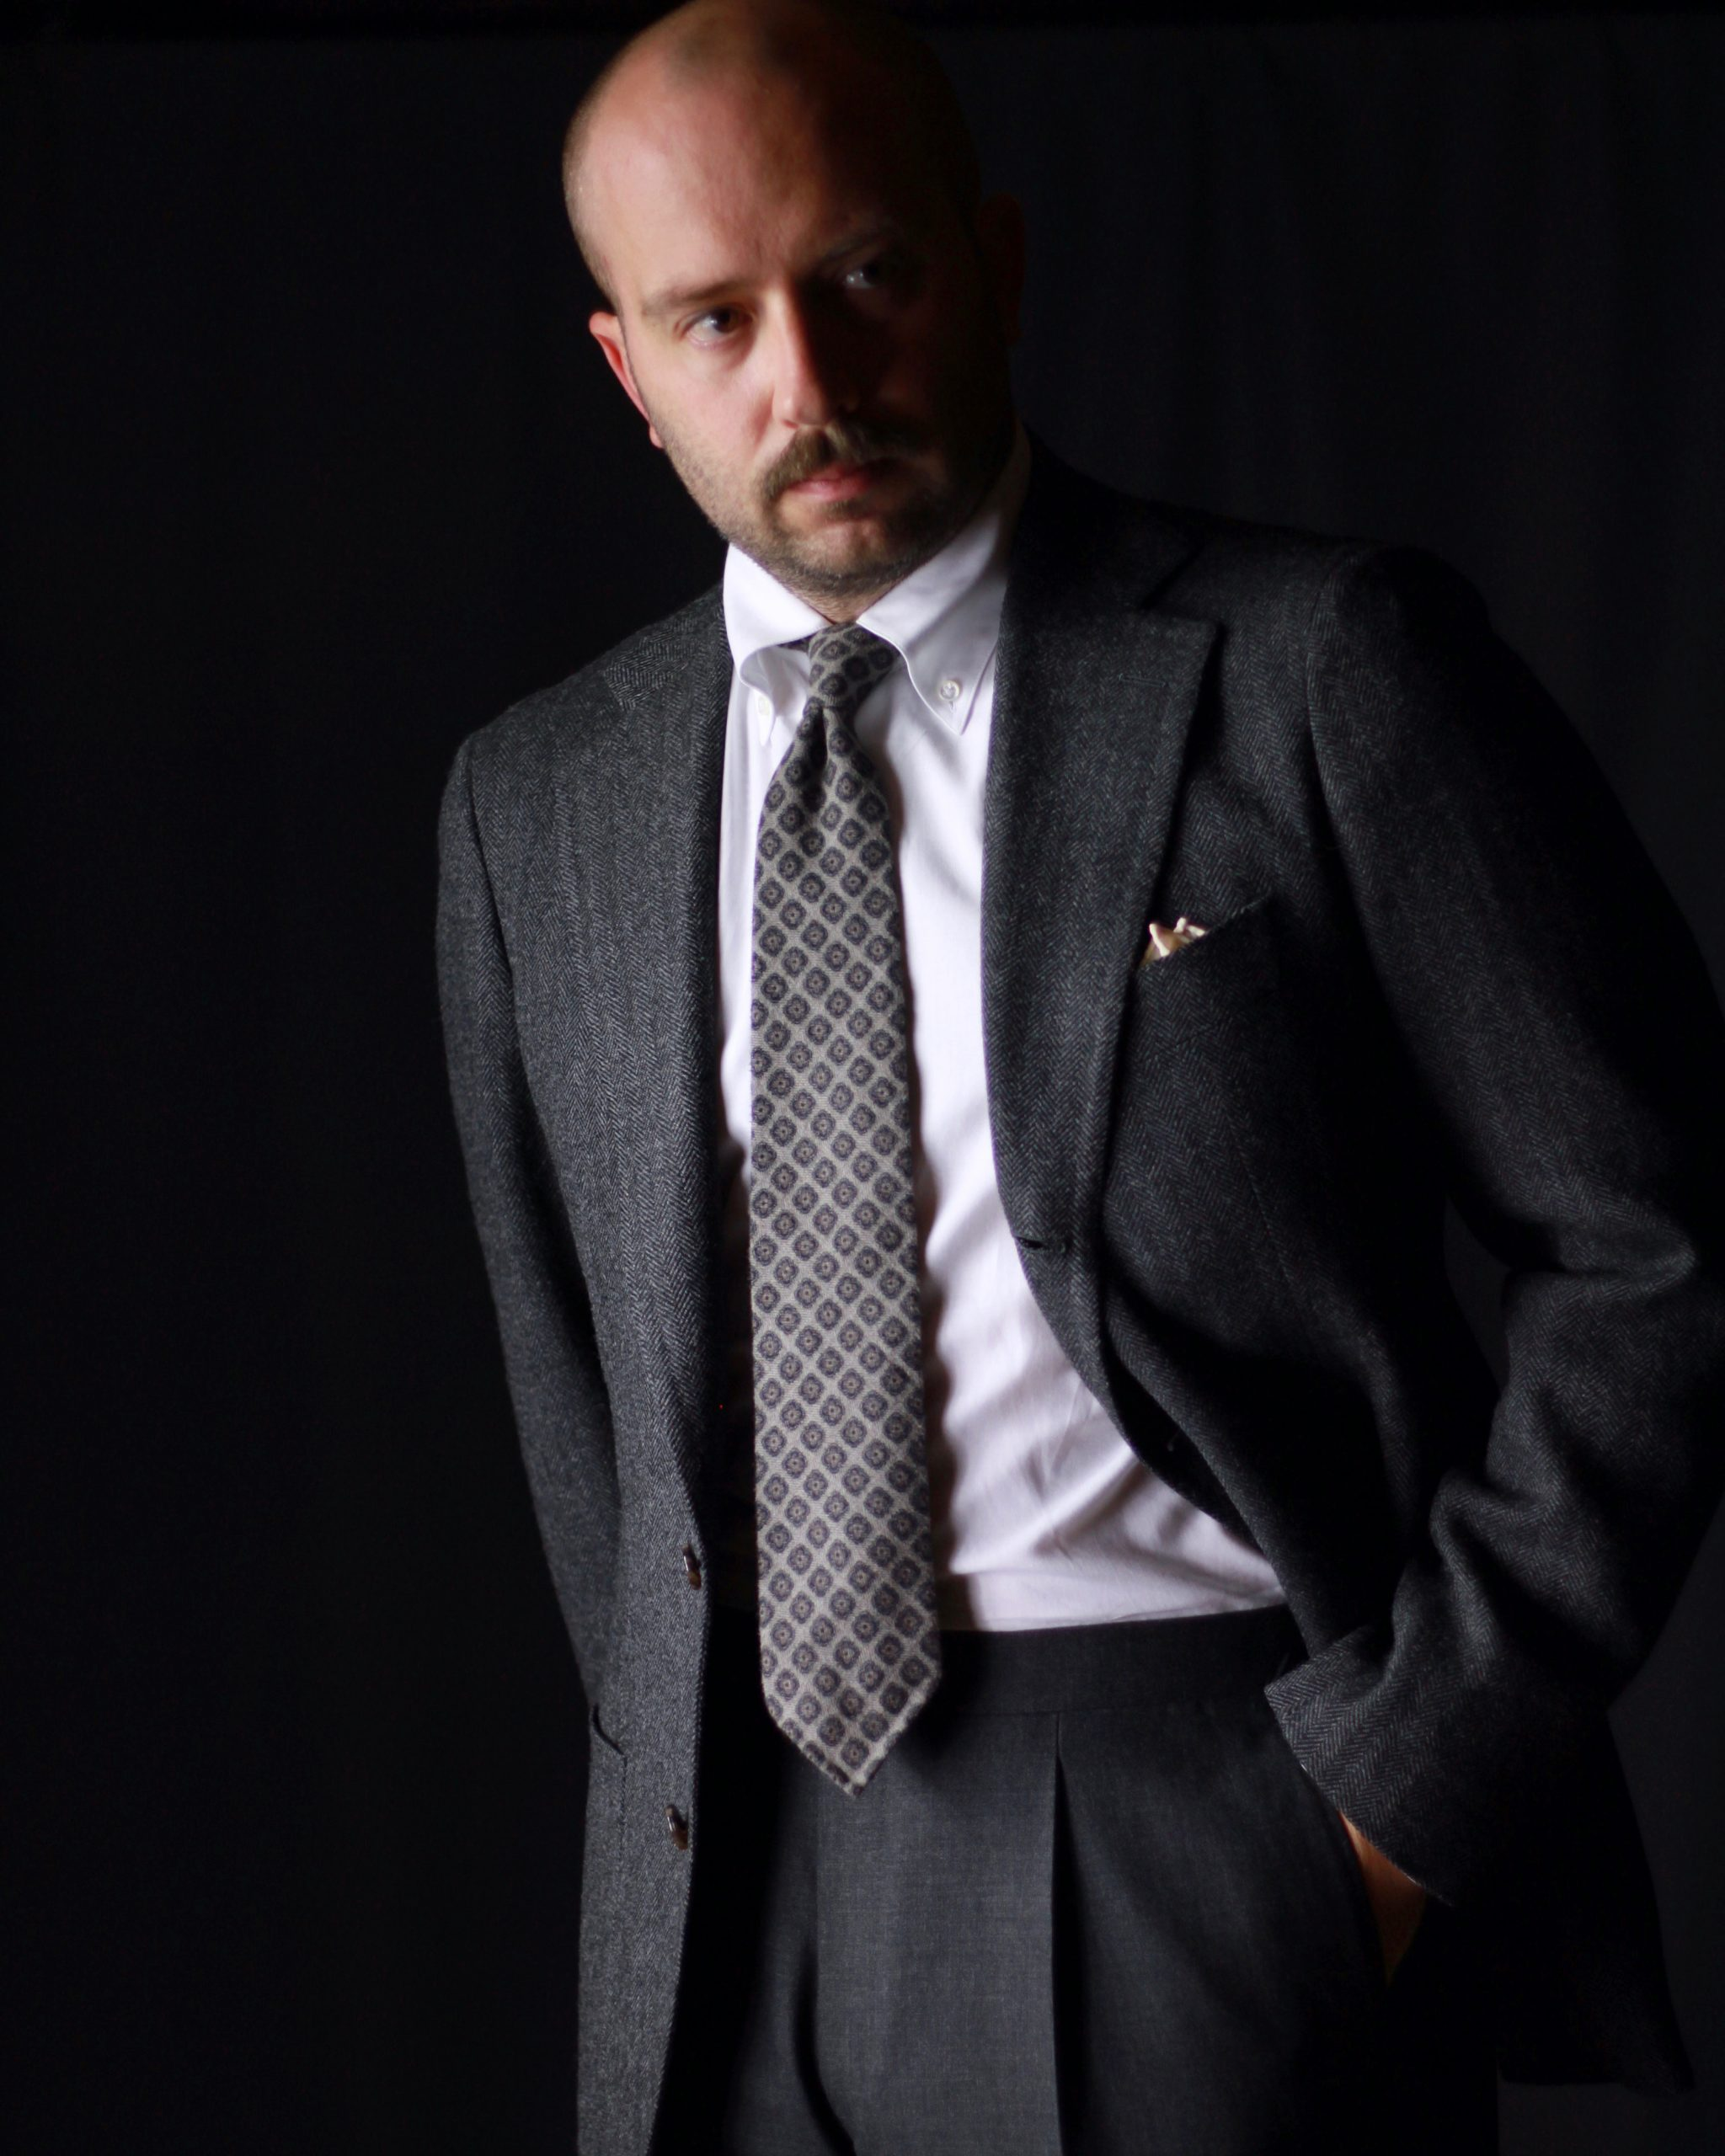 cavour, mod 2, what i wore, after the suit, loro piana, herringbone, tailoring, sport coat